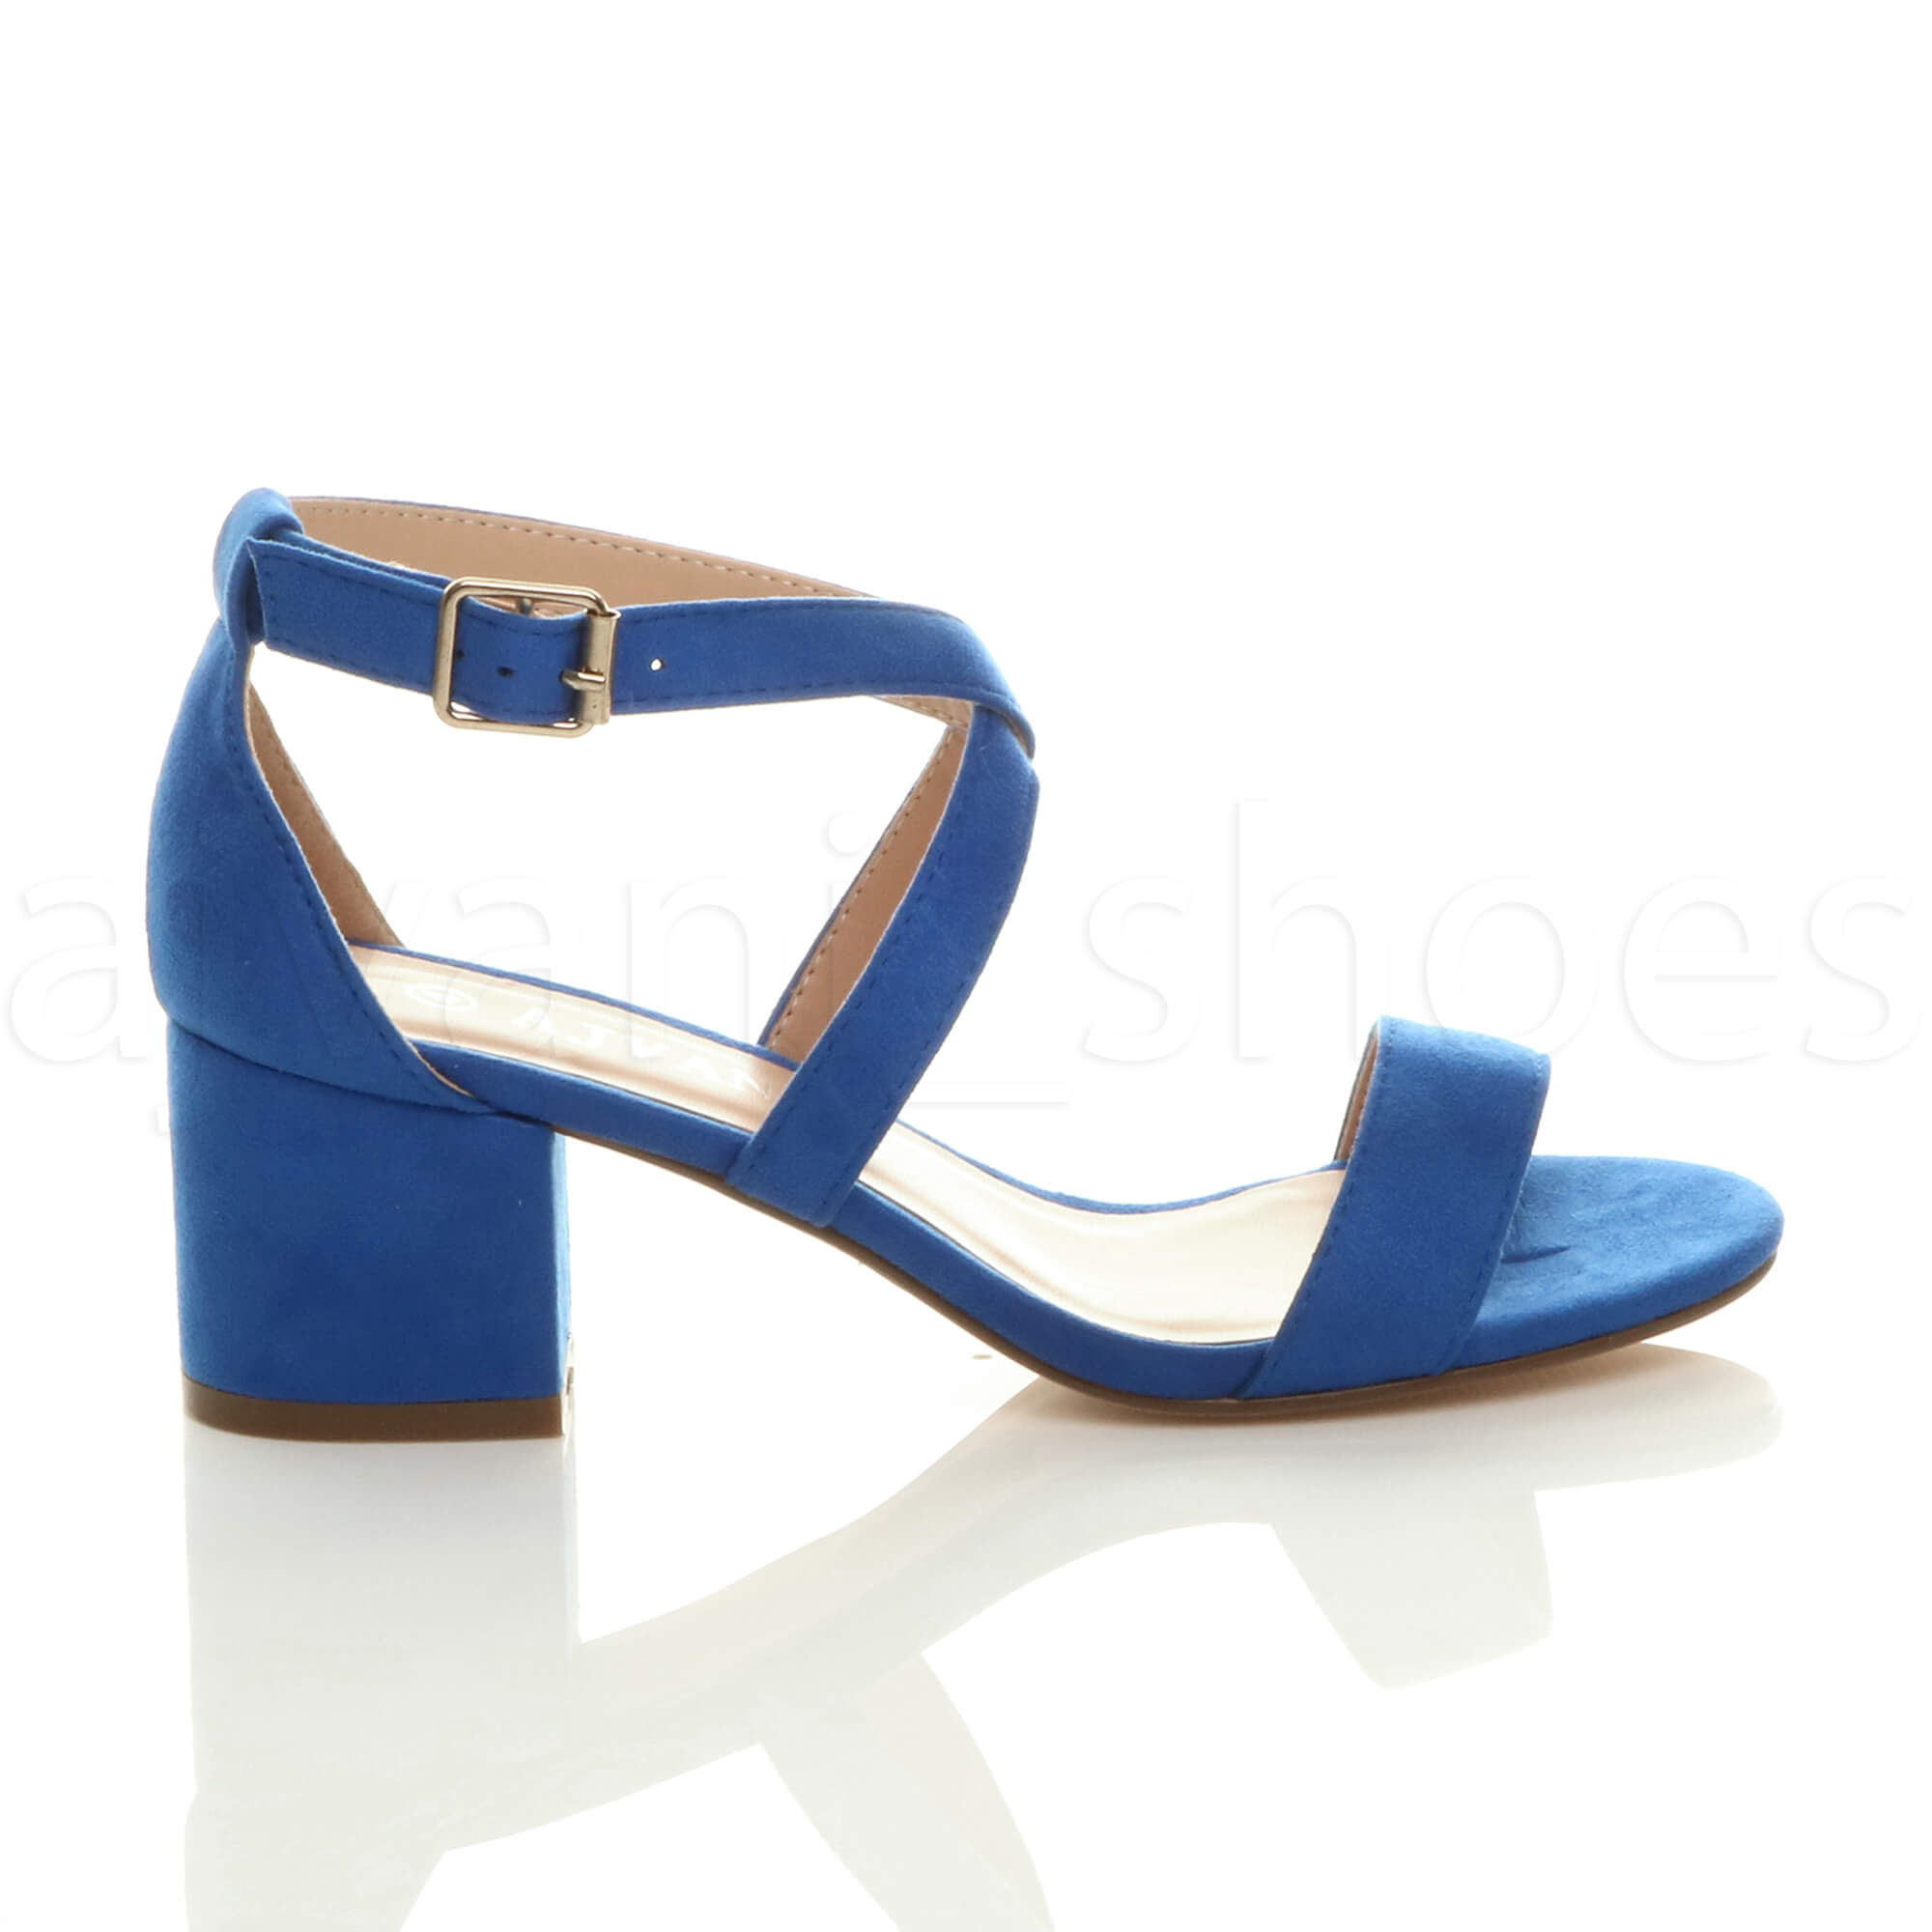 WOMENS-LADIES-MID-LOW-BLOCK-HEEL-CROSS-STRAPS-PARTY-STRAPPY-SANDALS-SHOES-SIZE thumbnail 13